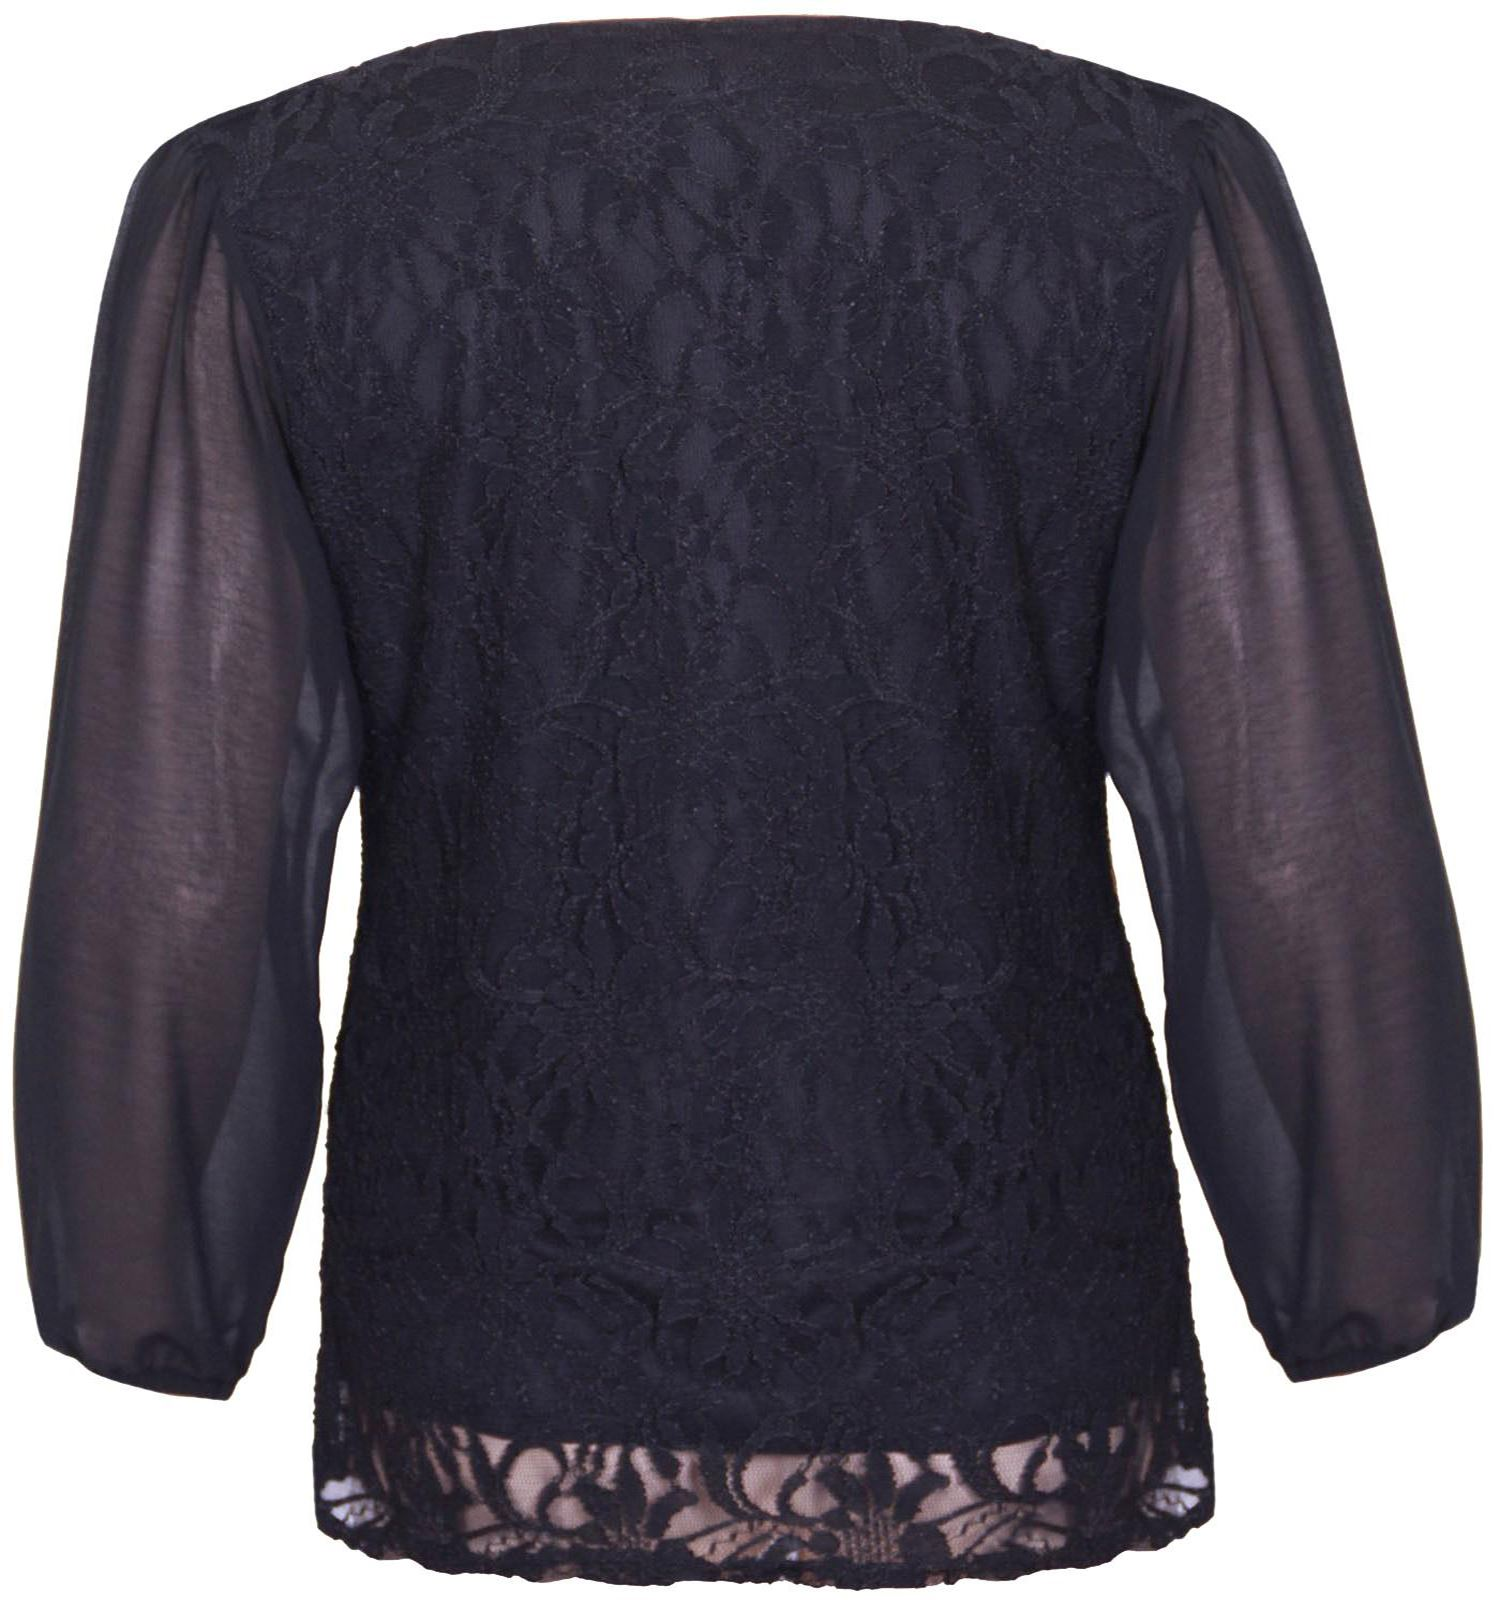 New-Womens-Long-Sleeve-Floral-Lace-Plus-Size-Chiffon-Tunic-Tops-16-26